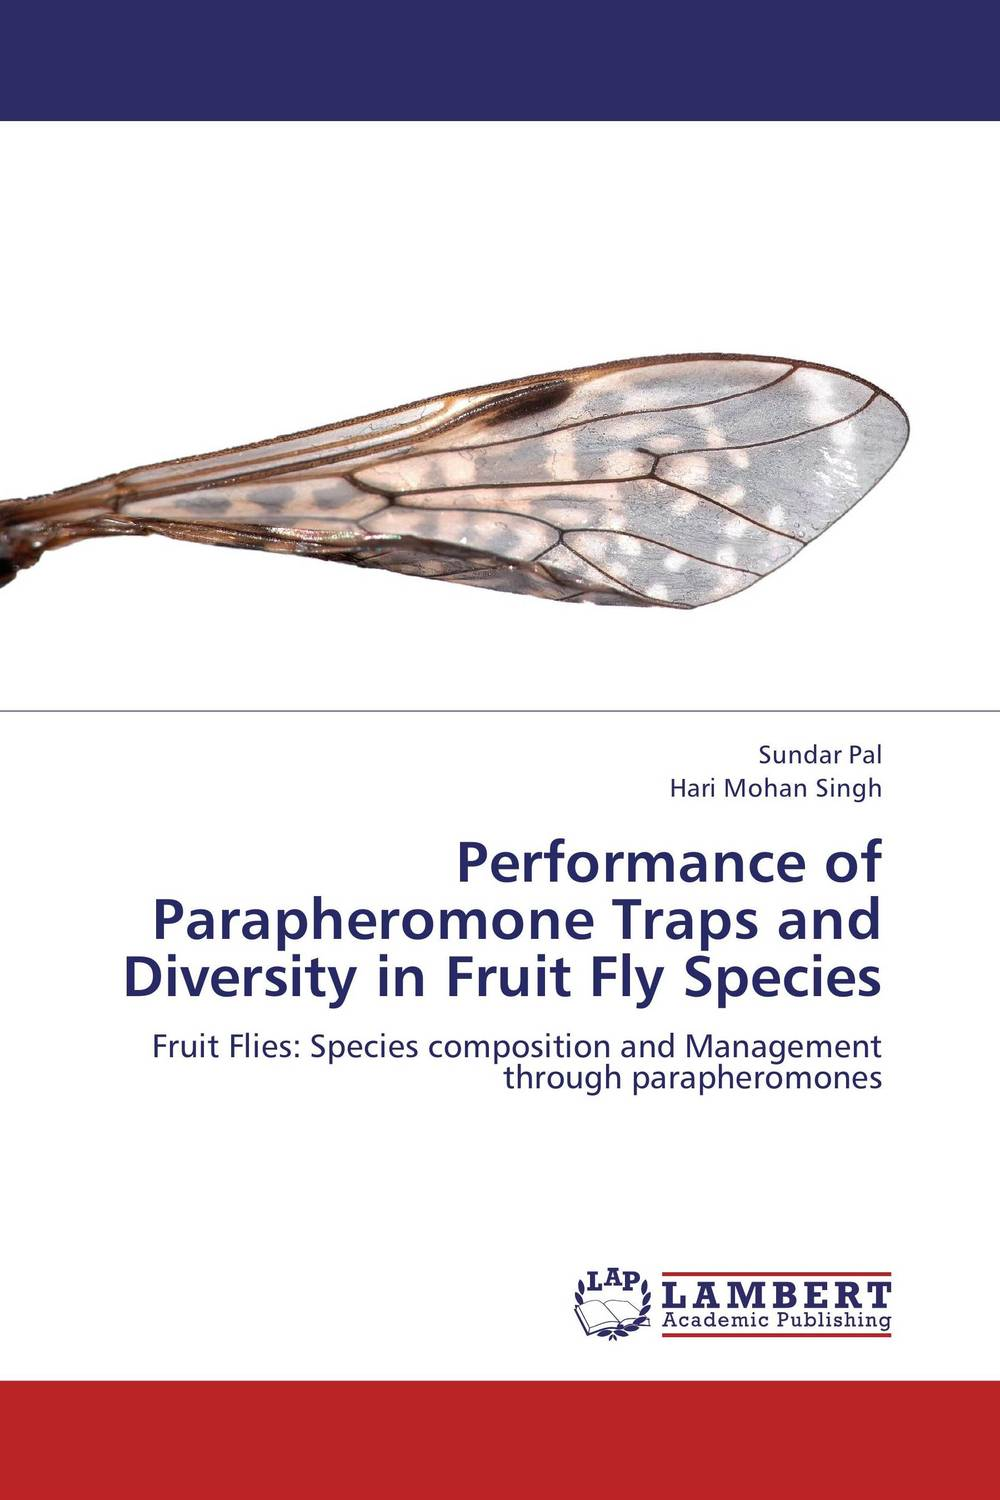 Performance of Parapheromone Traps and Diversity in Fruit Fly Species linguistic diversity and social justice